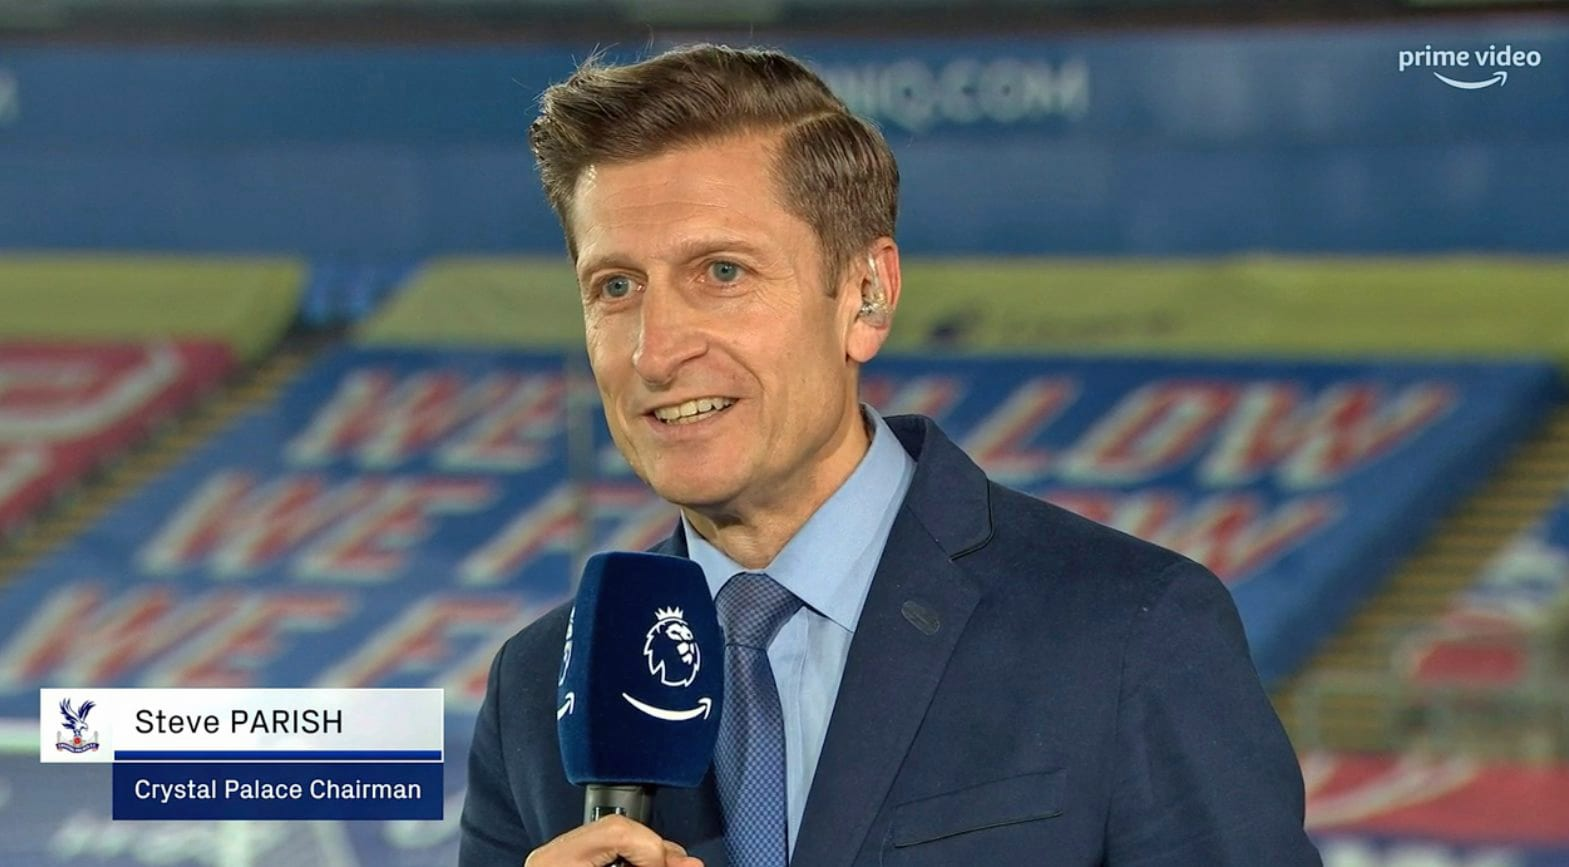 How much is the net worth of Steve Parish?